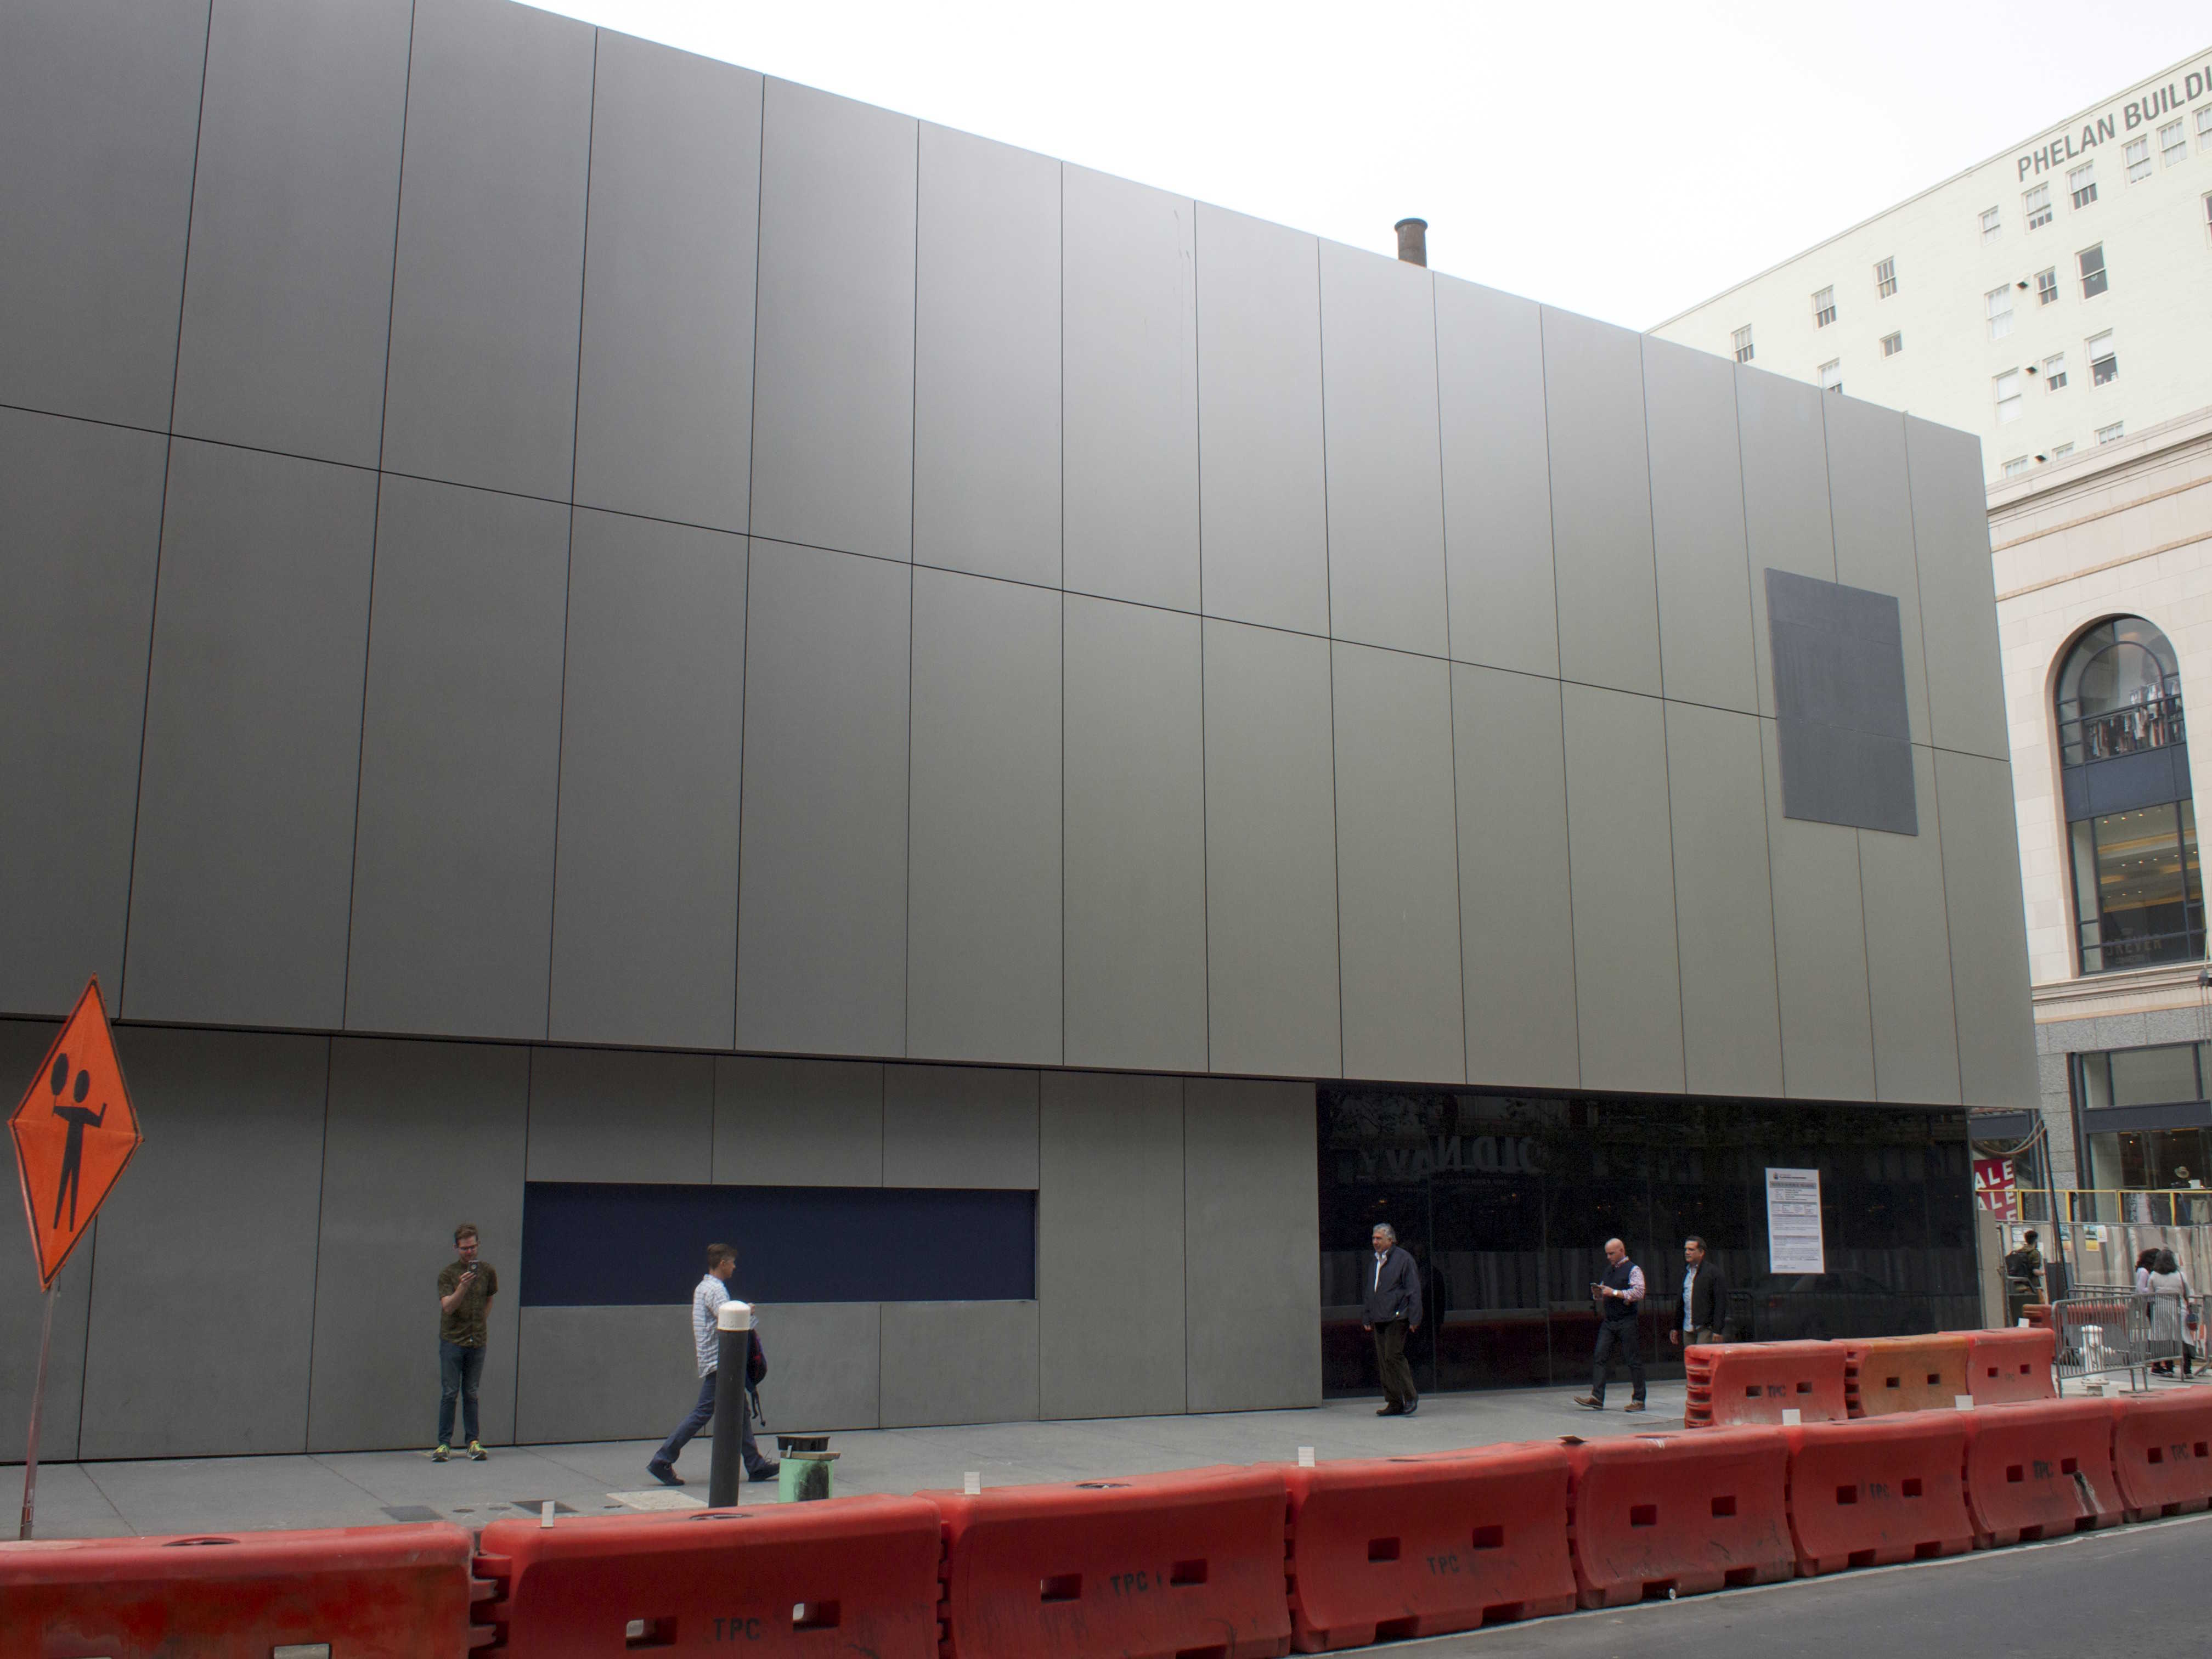 Apple Store Building Cost